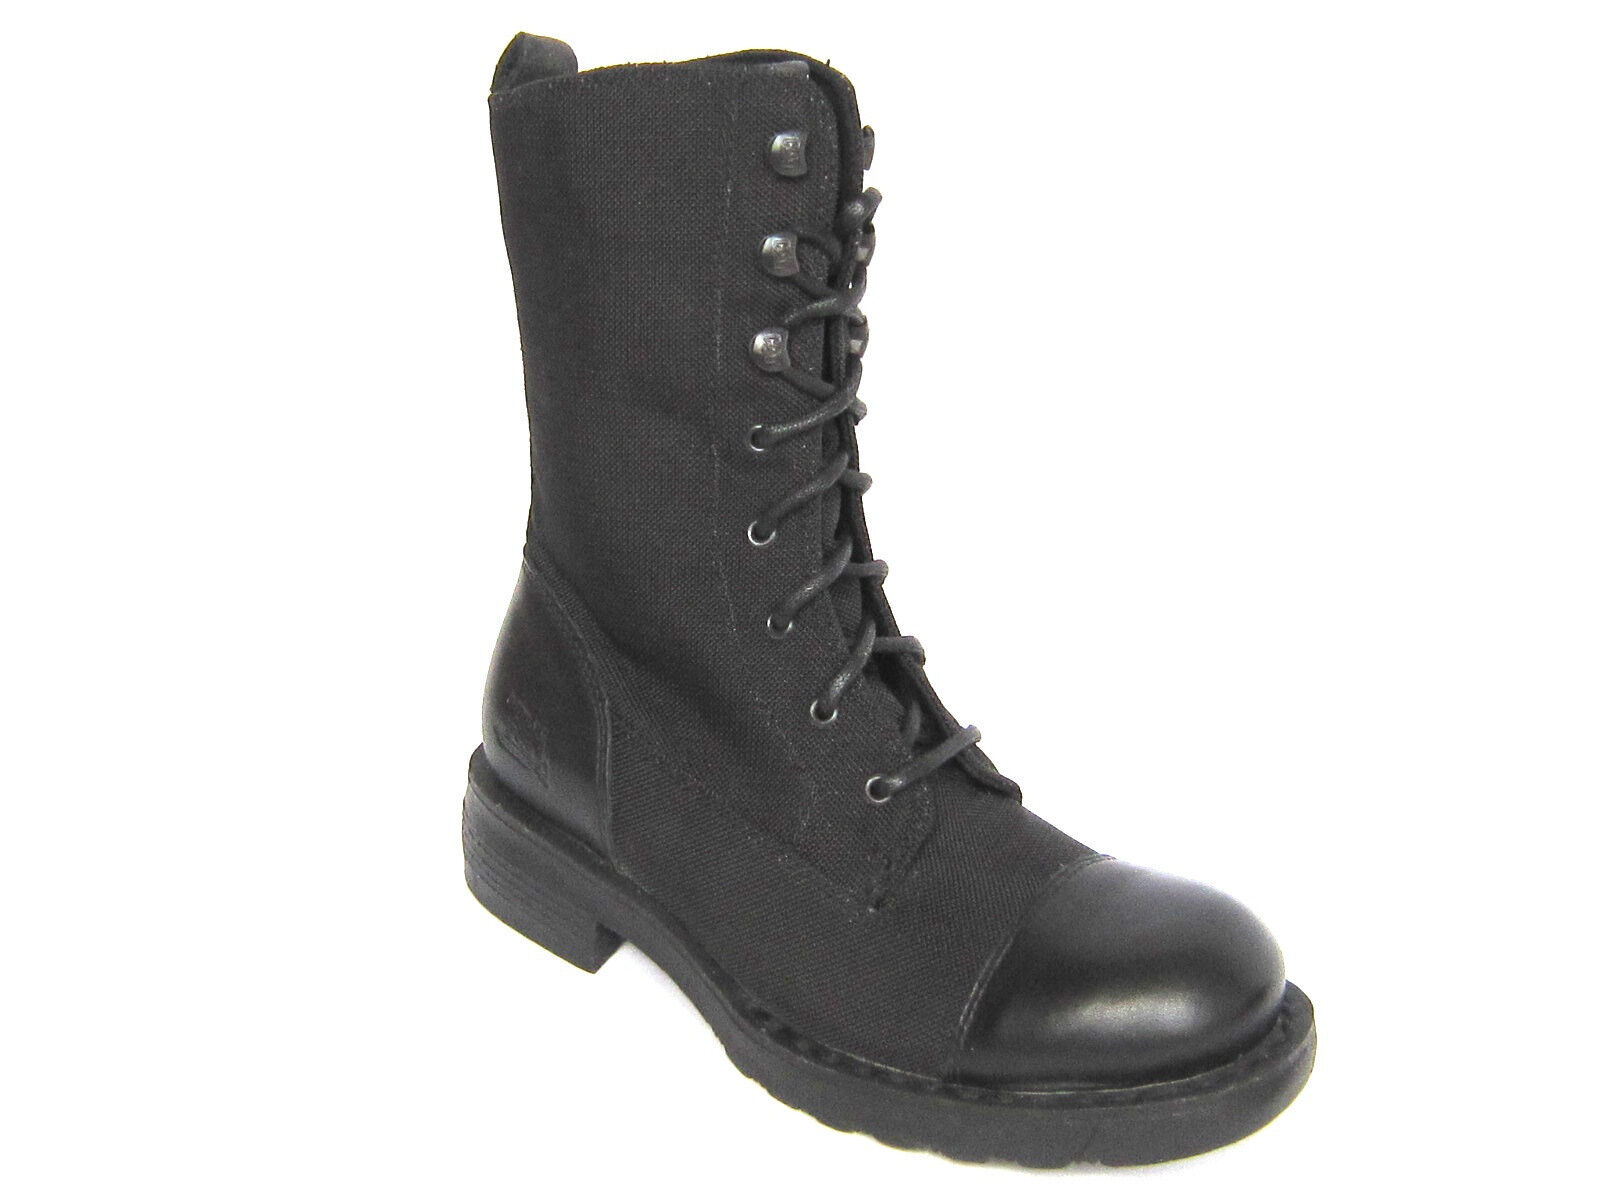 Caterpillar Jenna Damenschuhe  Casual  Motorcycle  Lace Up  Military  Stiefel US-6